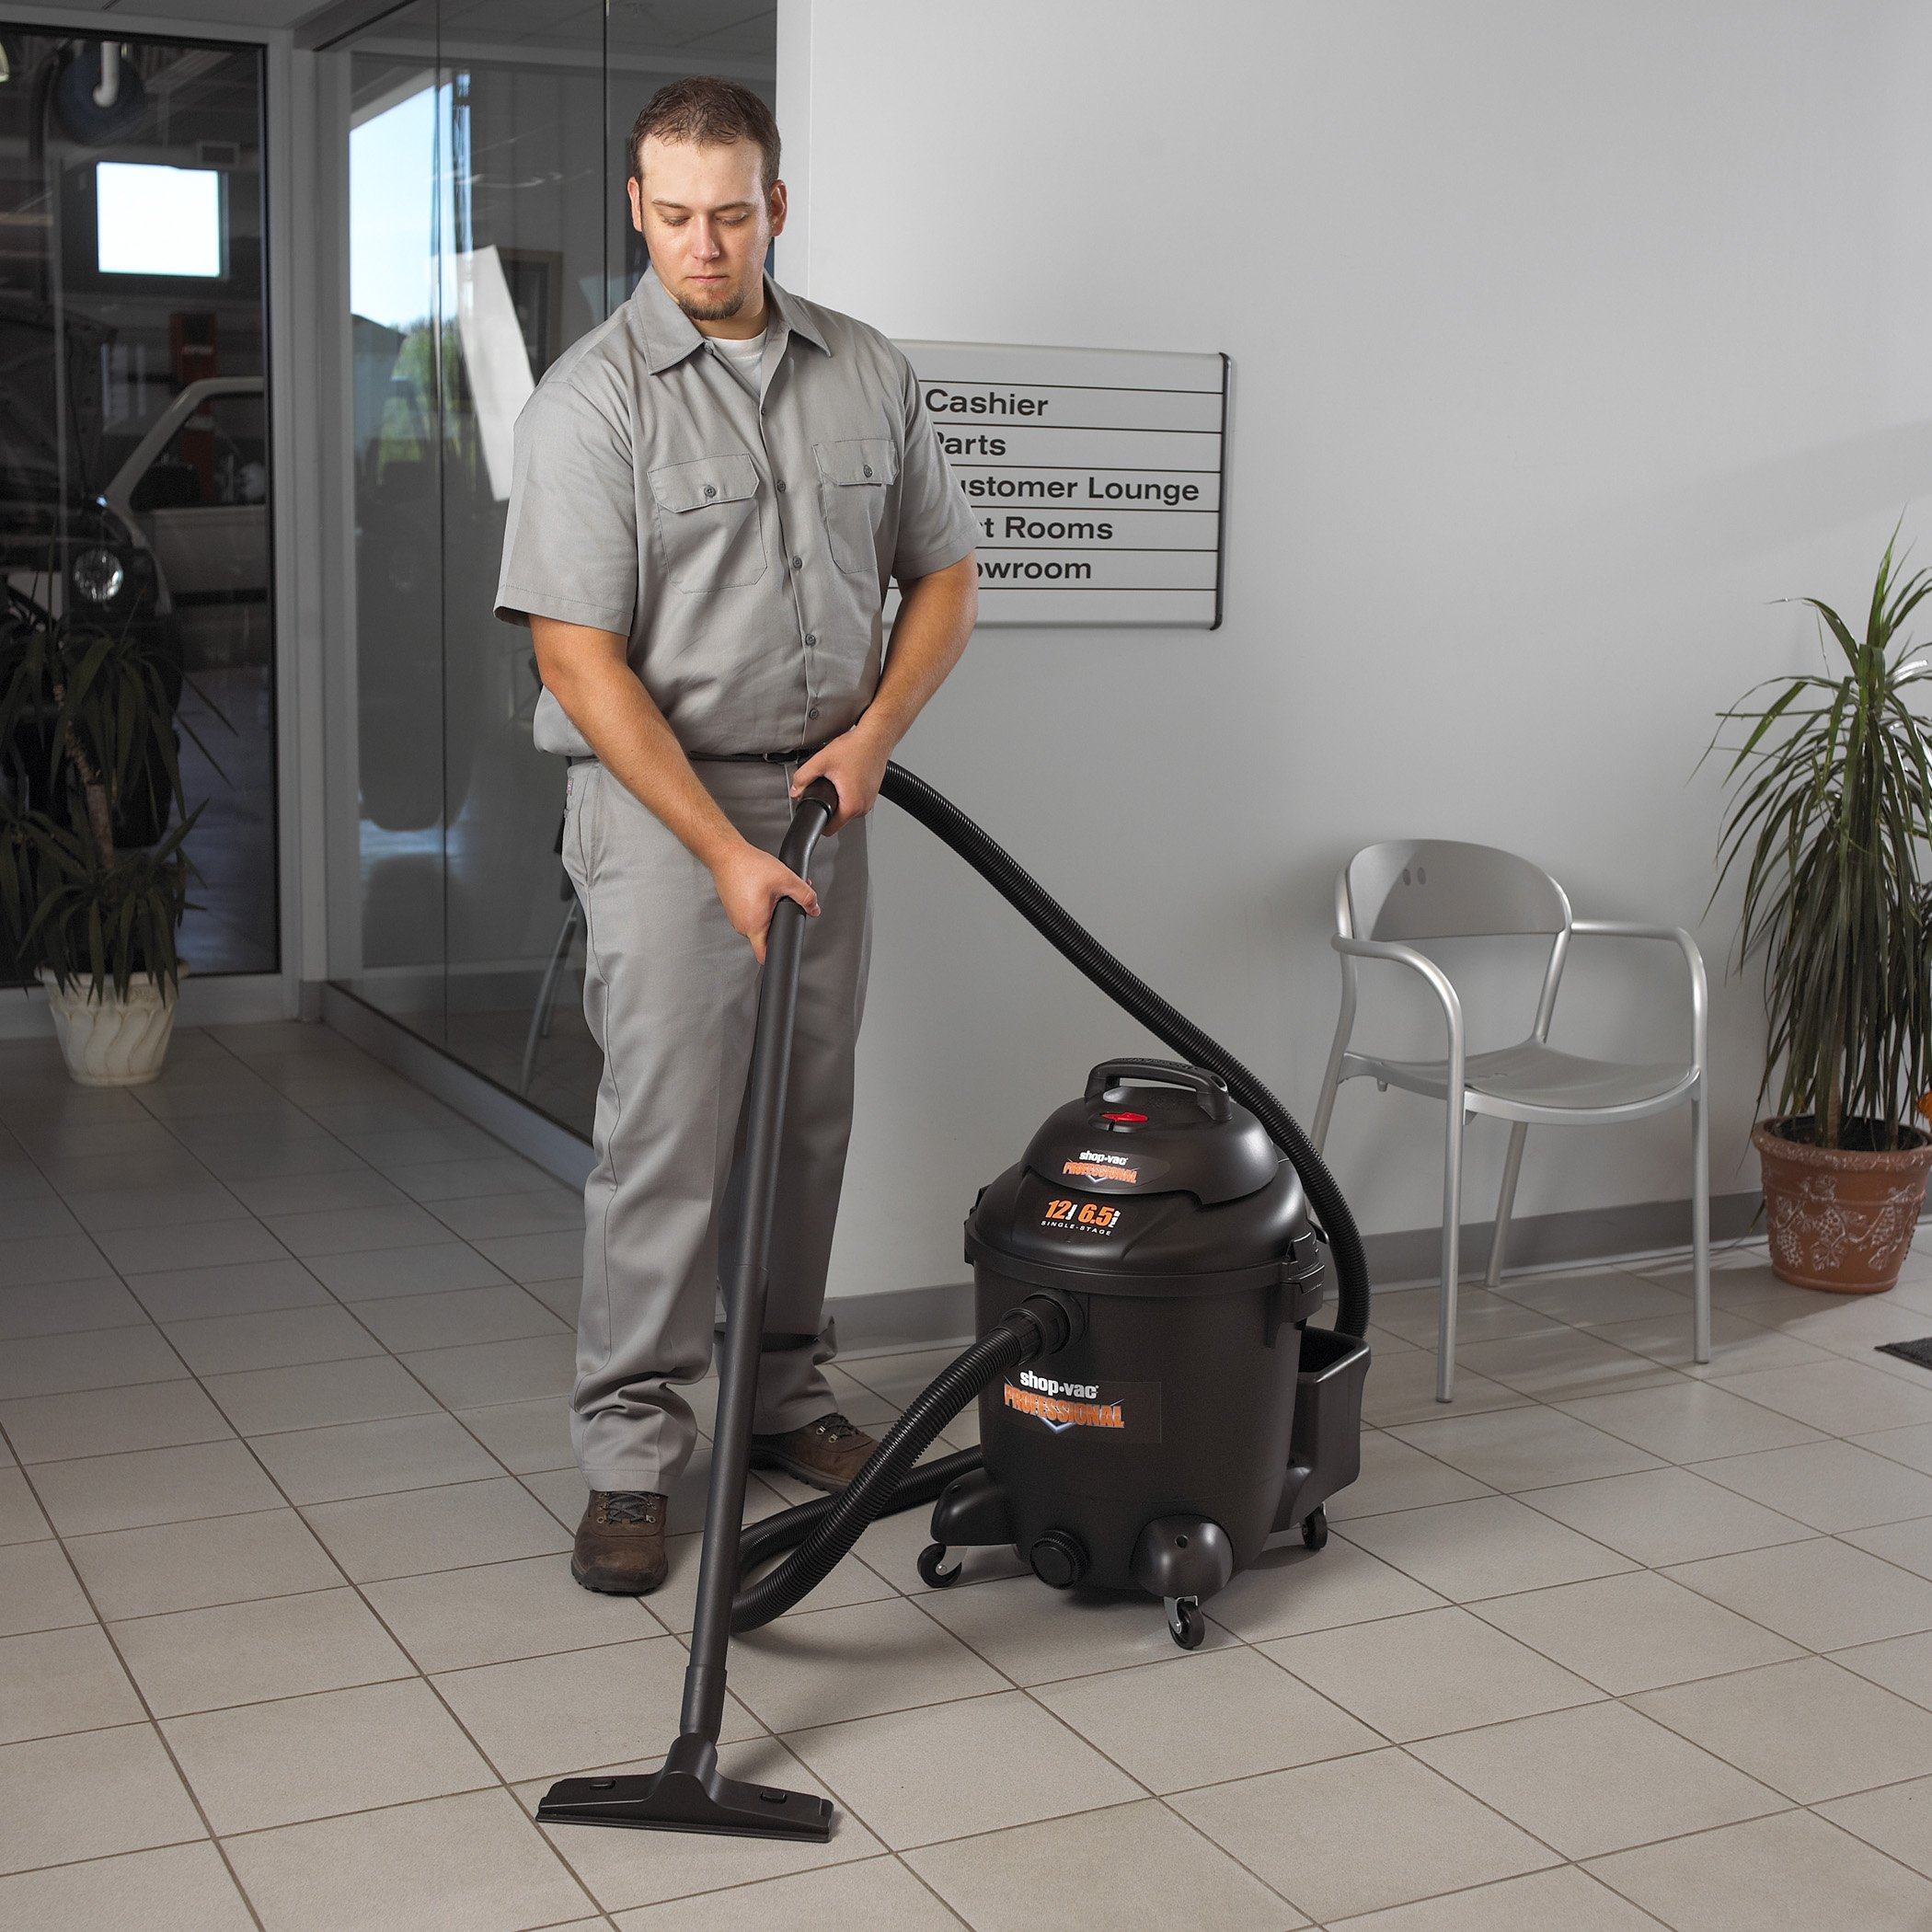 Shop-Vac 9621210 Professional Commercial Duty Vacuum - 12 Gallon Capacity by Shop-Vac (Image #7)